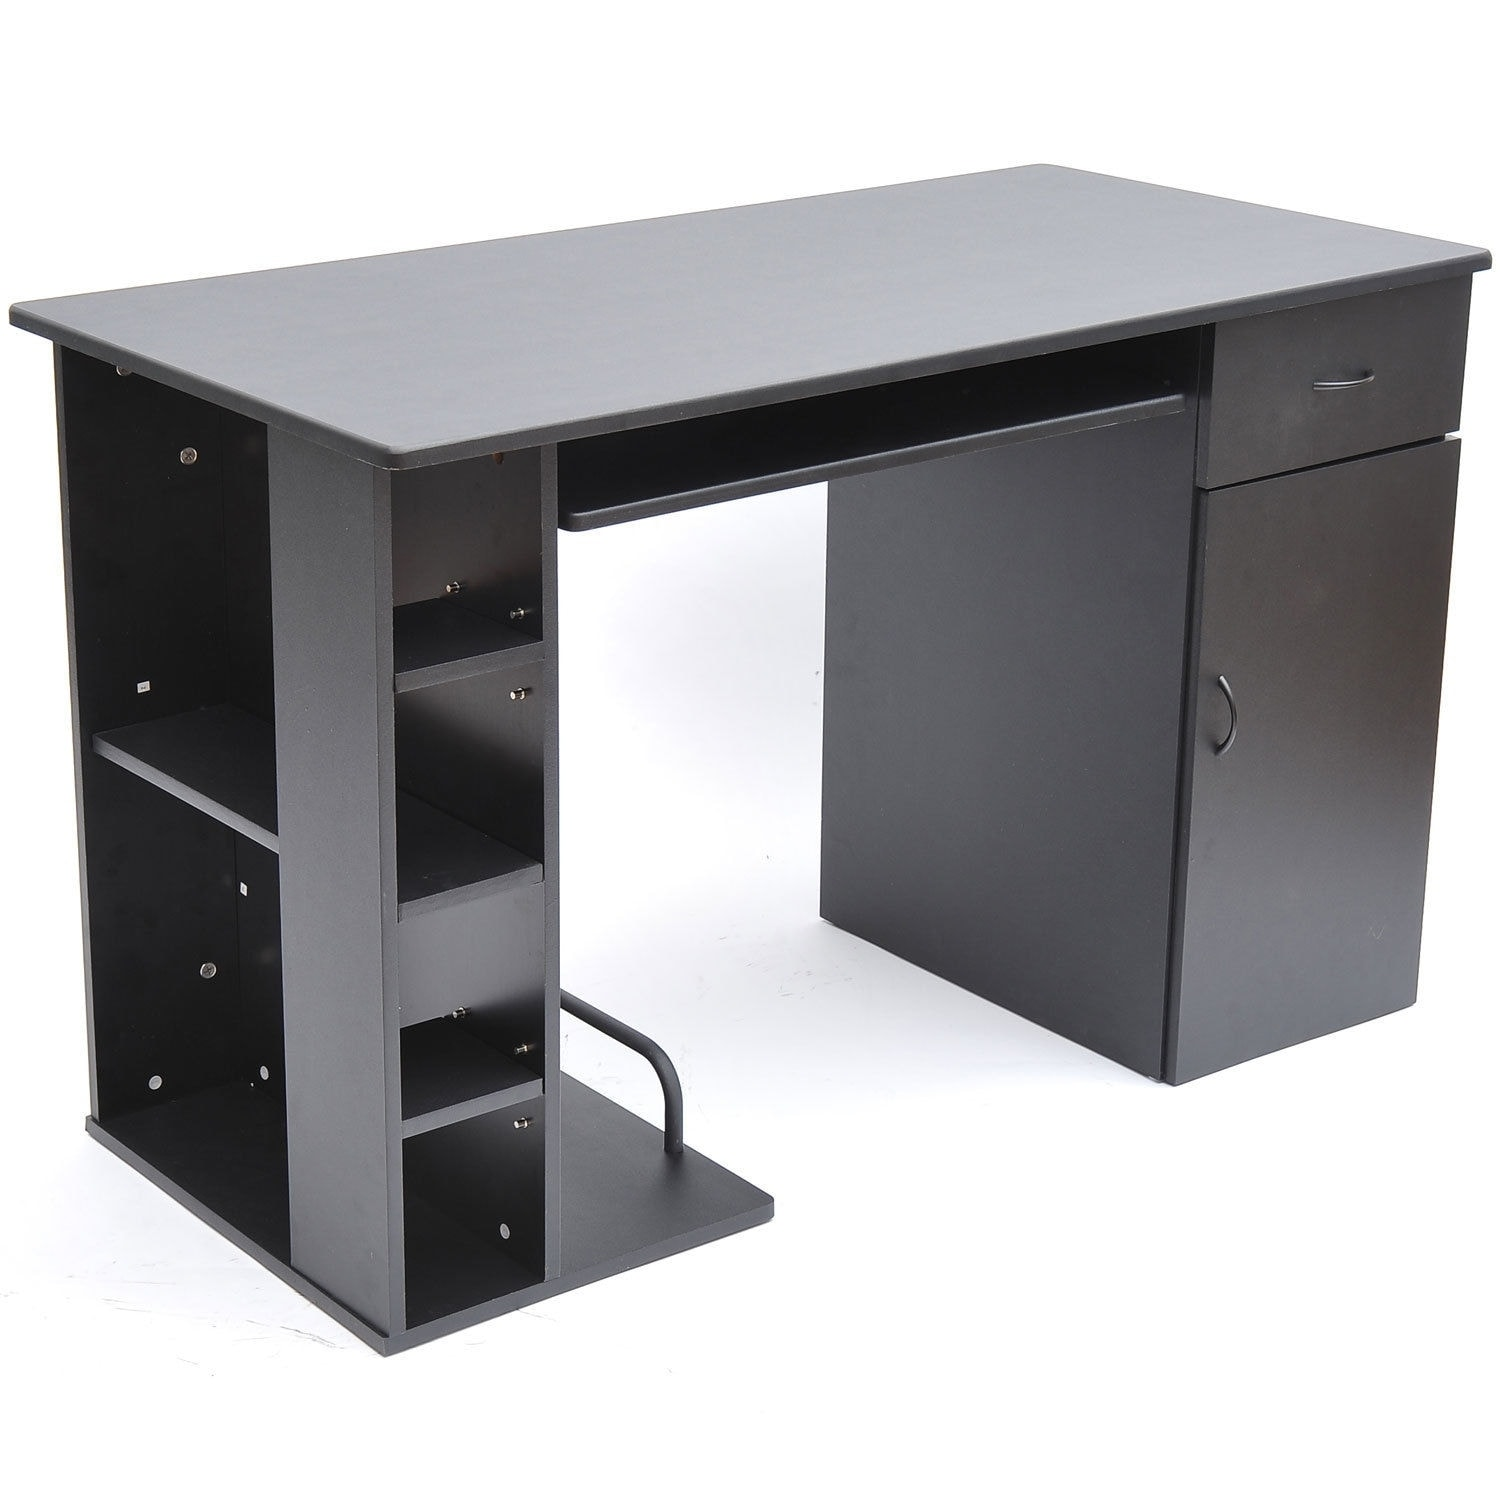 Homcom 47 in compact modern home office desk with shelving storage black